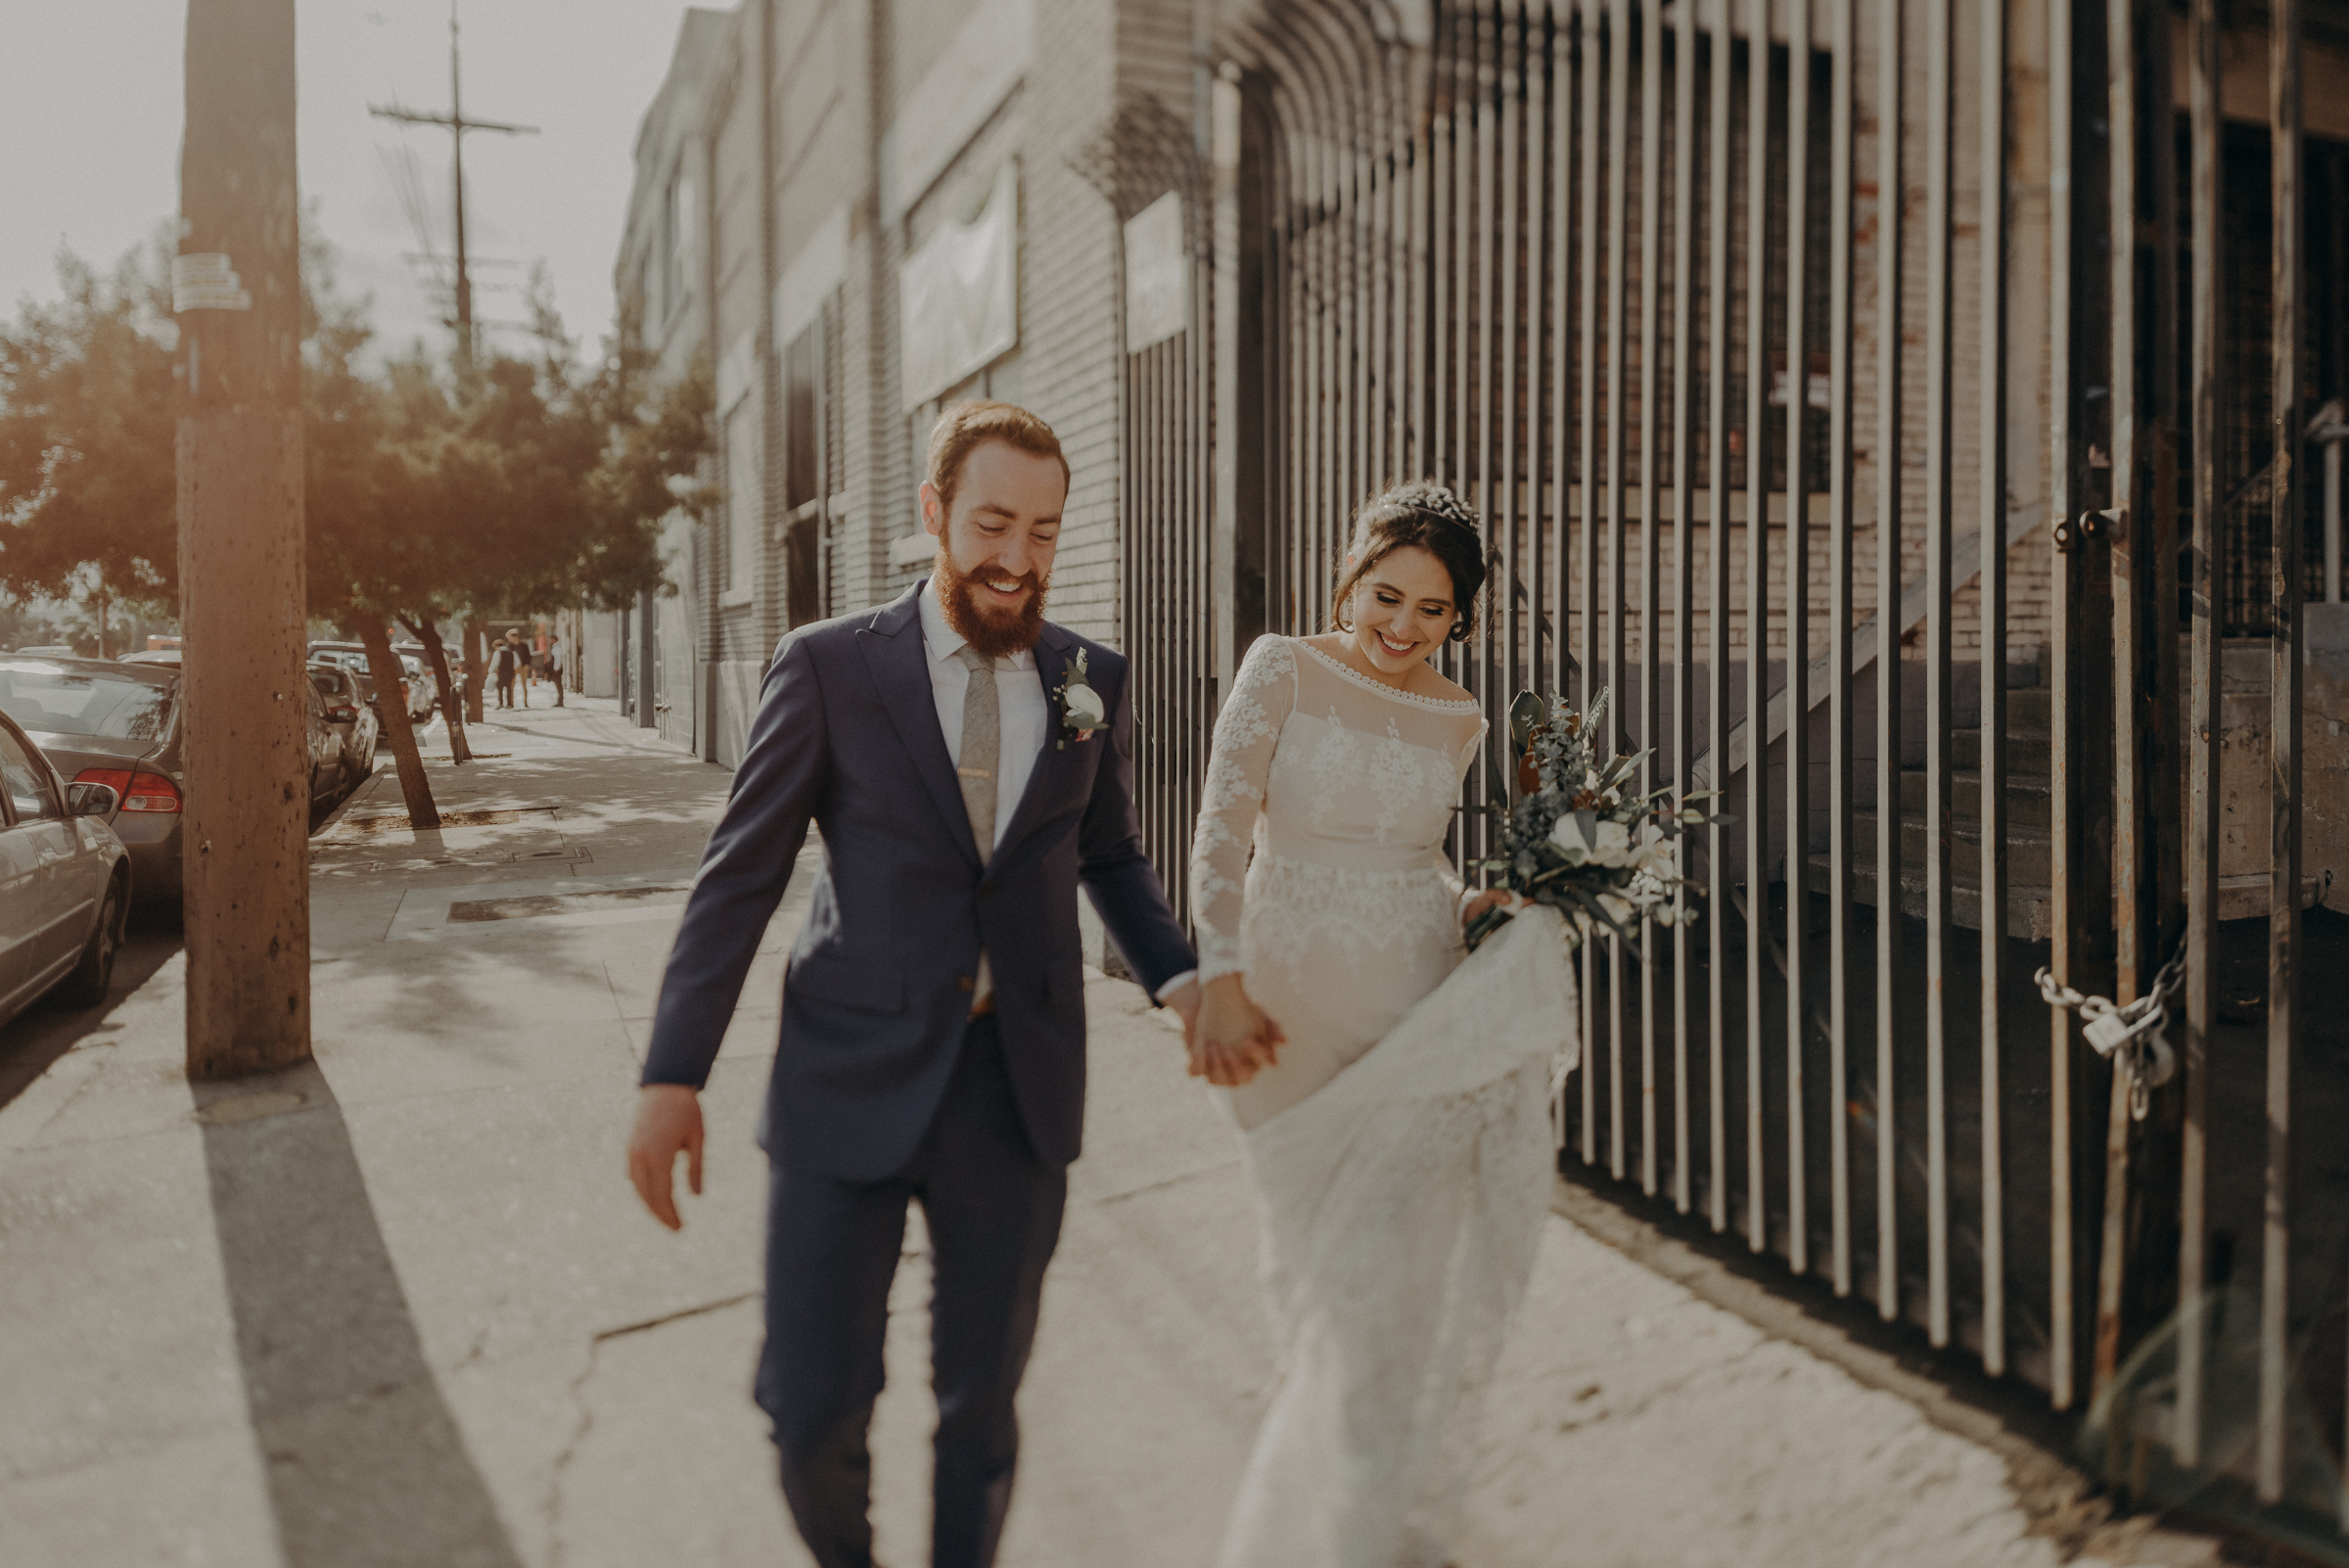 Isaiah + Taylor Photography - The Unique Space Wedding, Los Angeles Wedding Photography 089.jpg